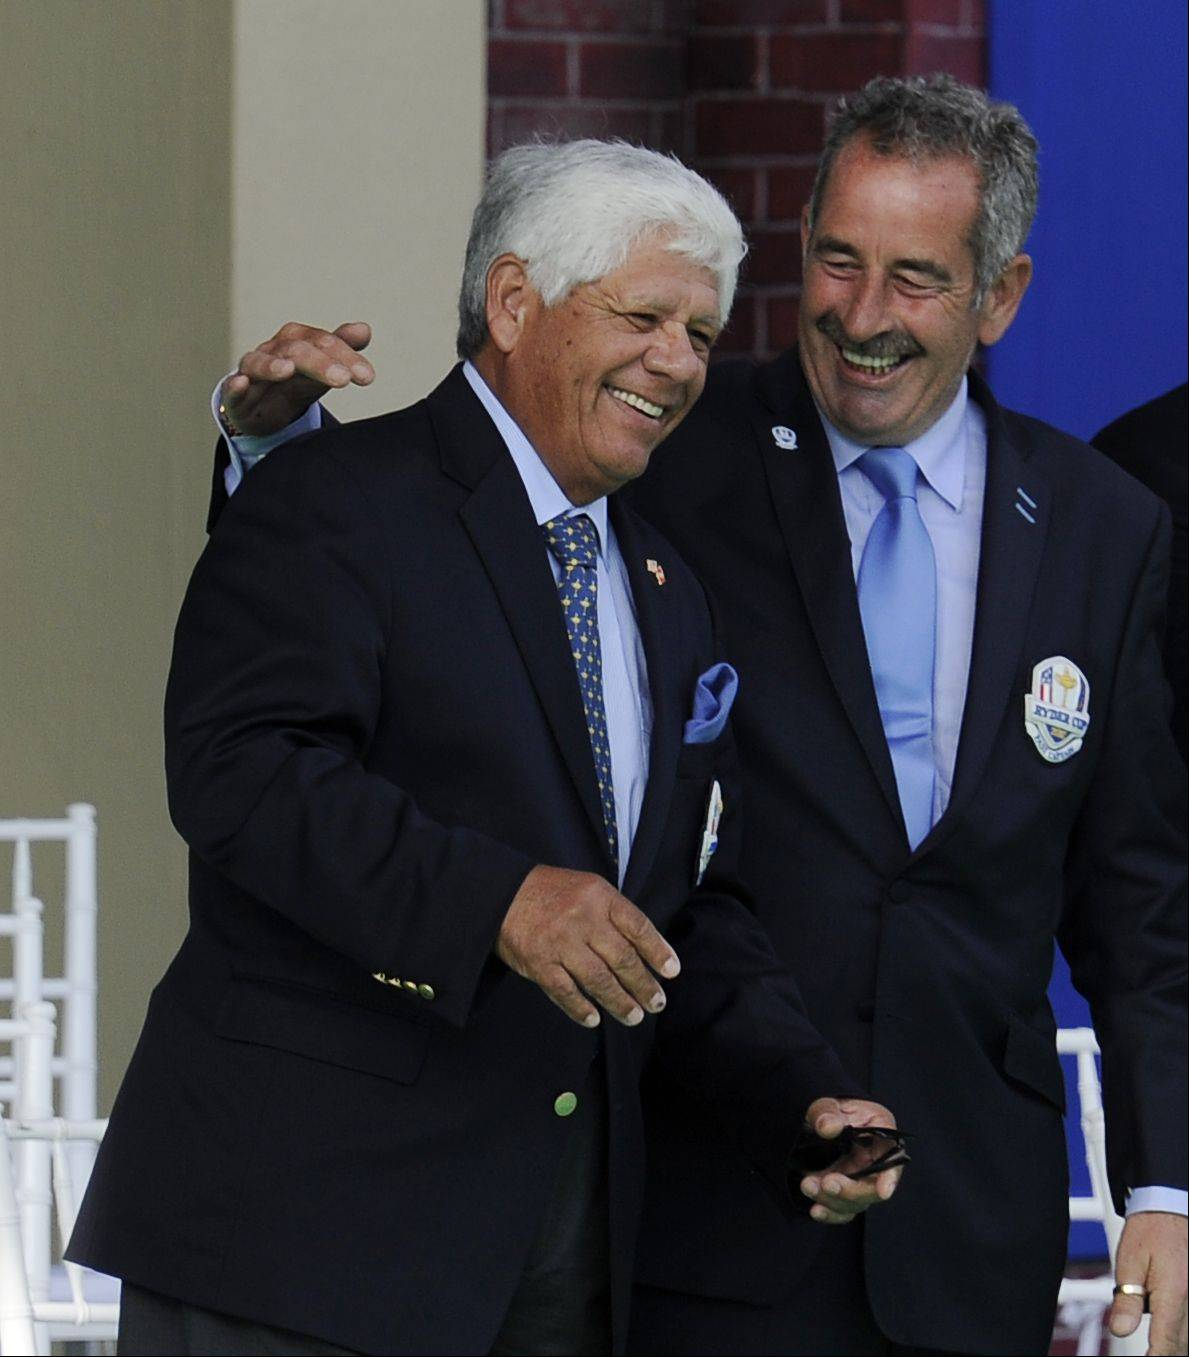 Fan favorite and golf legend Lee Trevino received a warm welcome at the opening ceremonies.